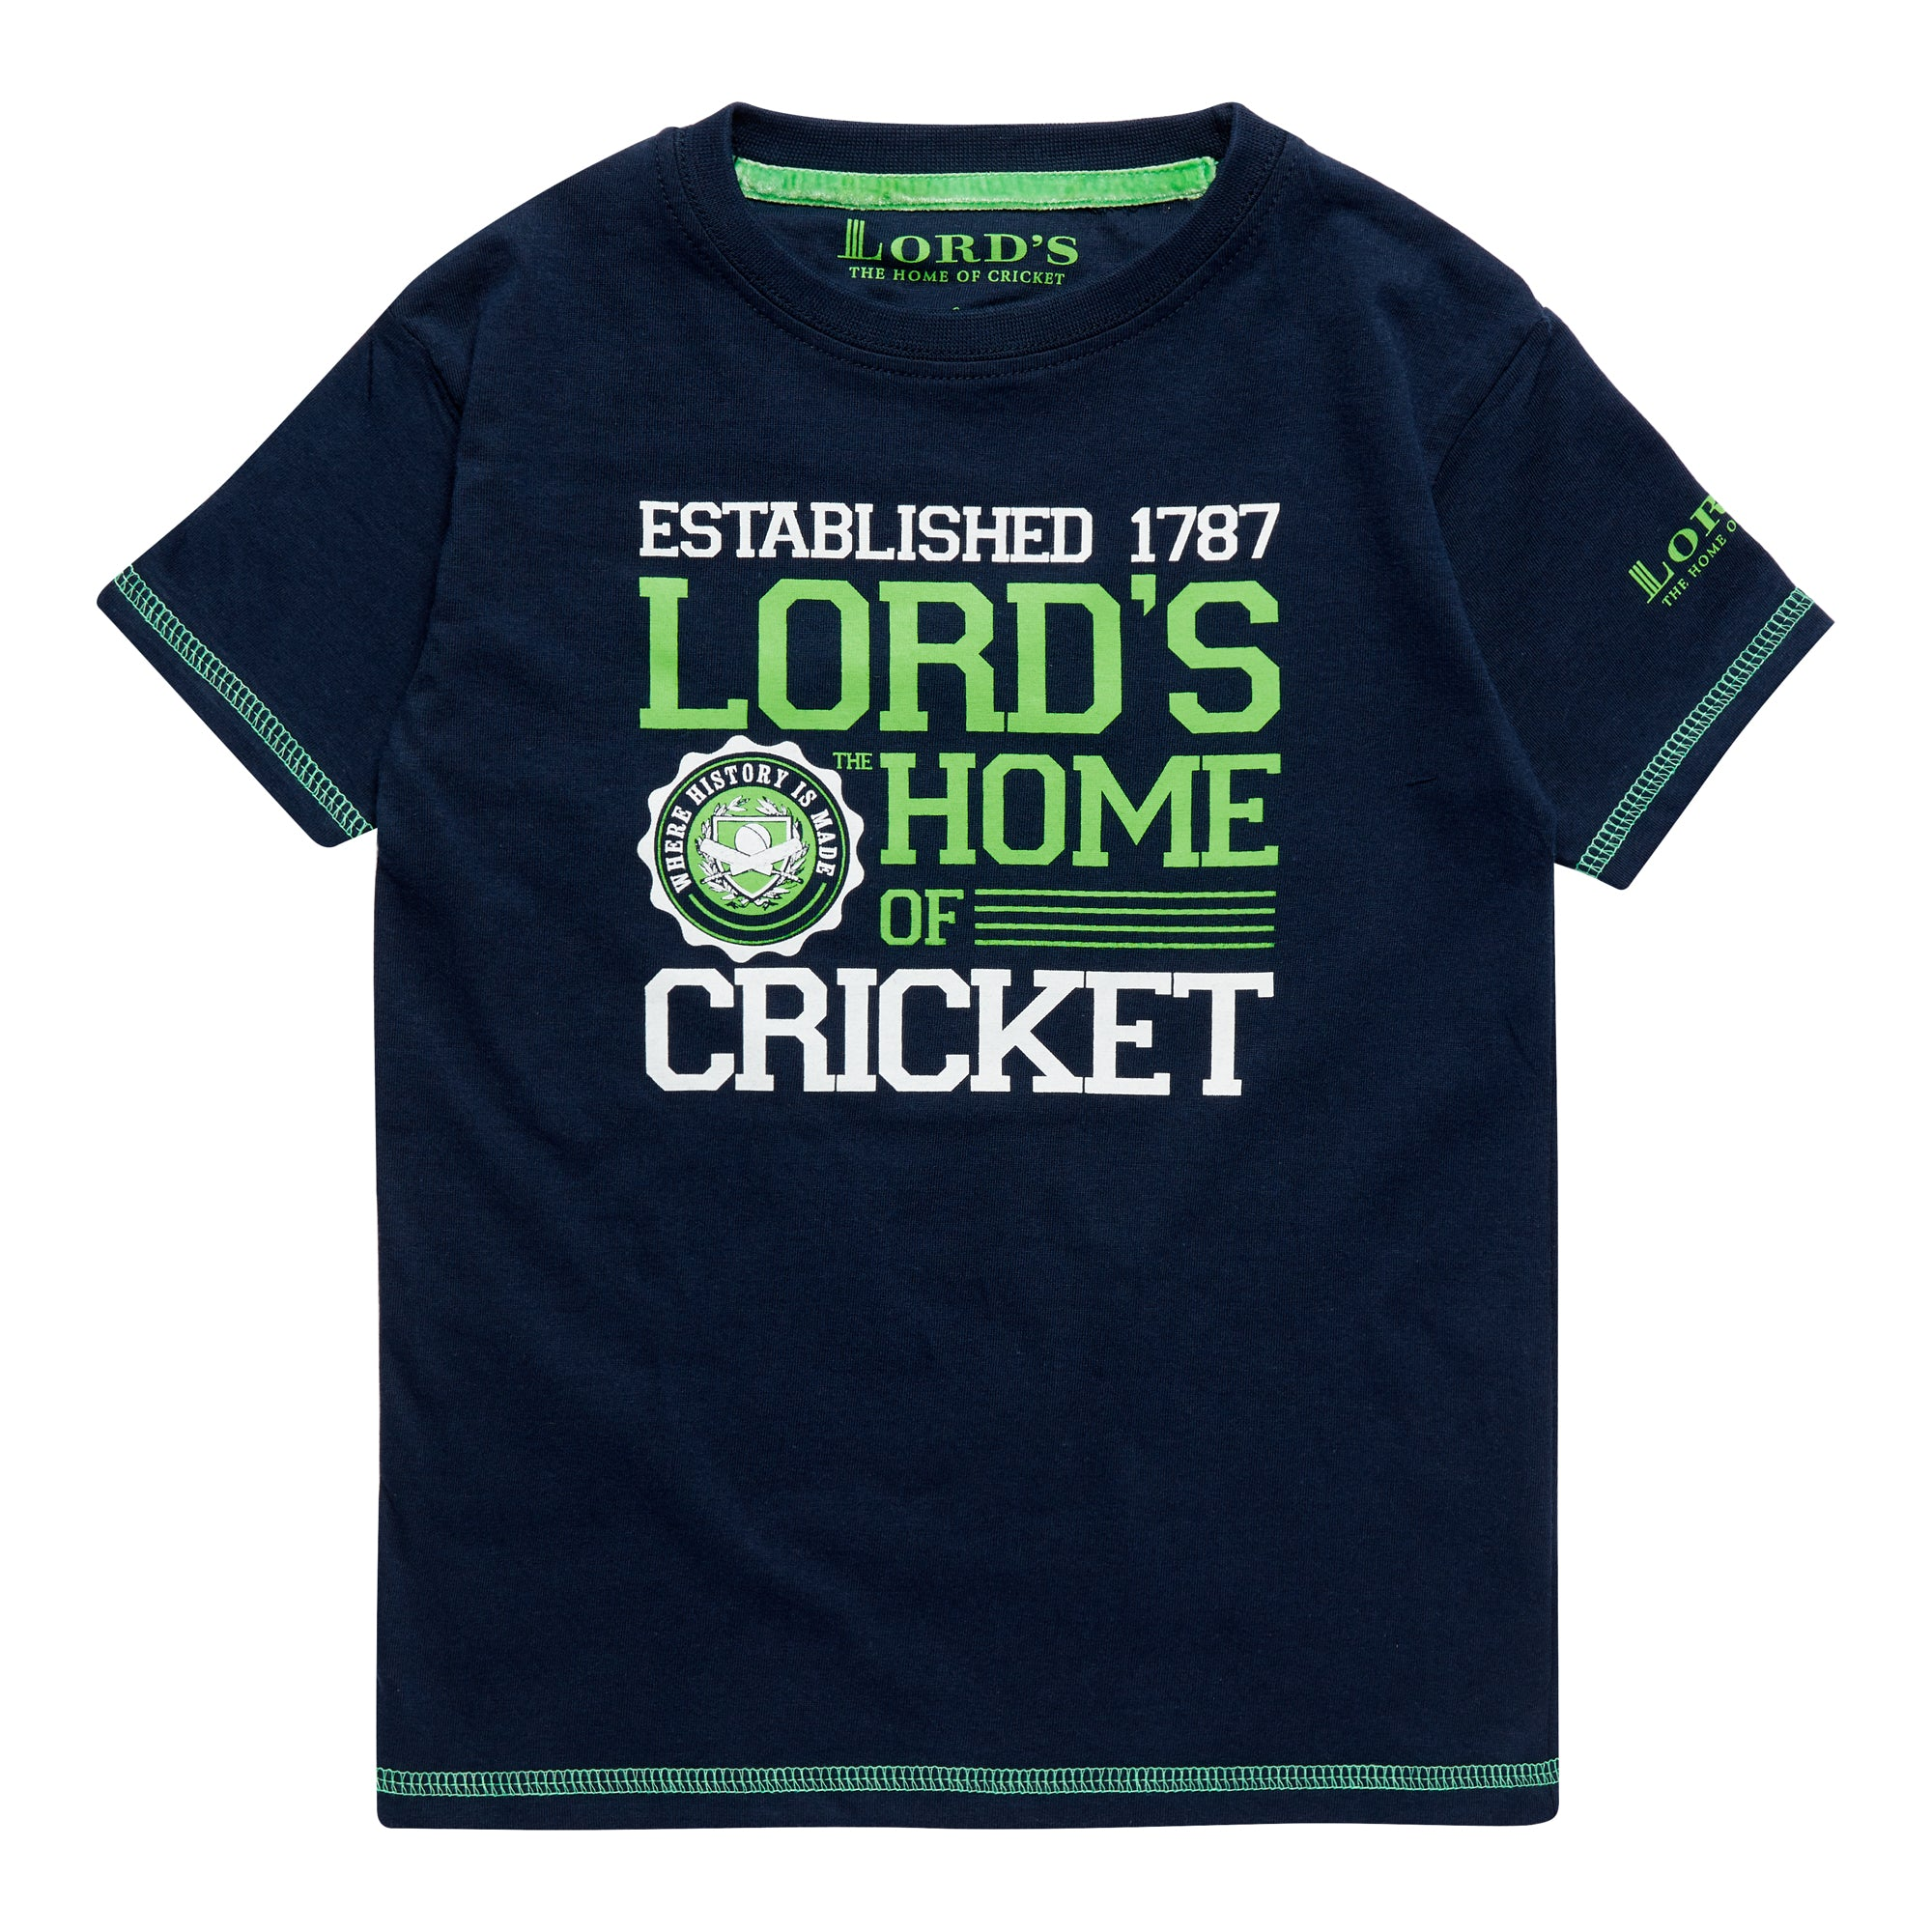 CHILDREN'S LORD'S THE HOME OF CRICKET NAVY T-SHIRT